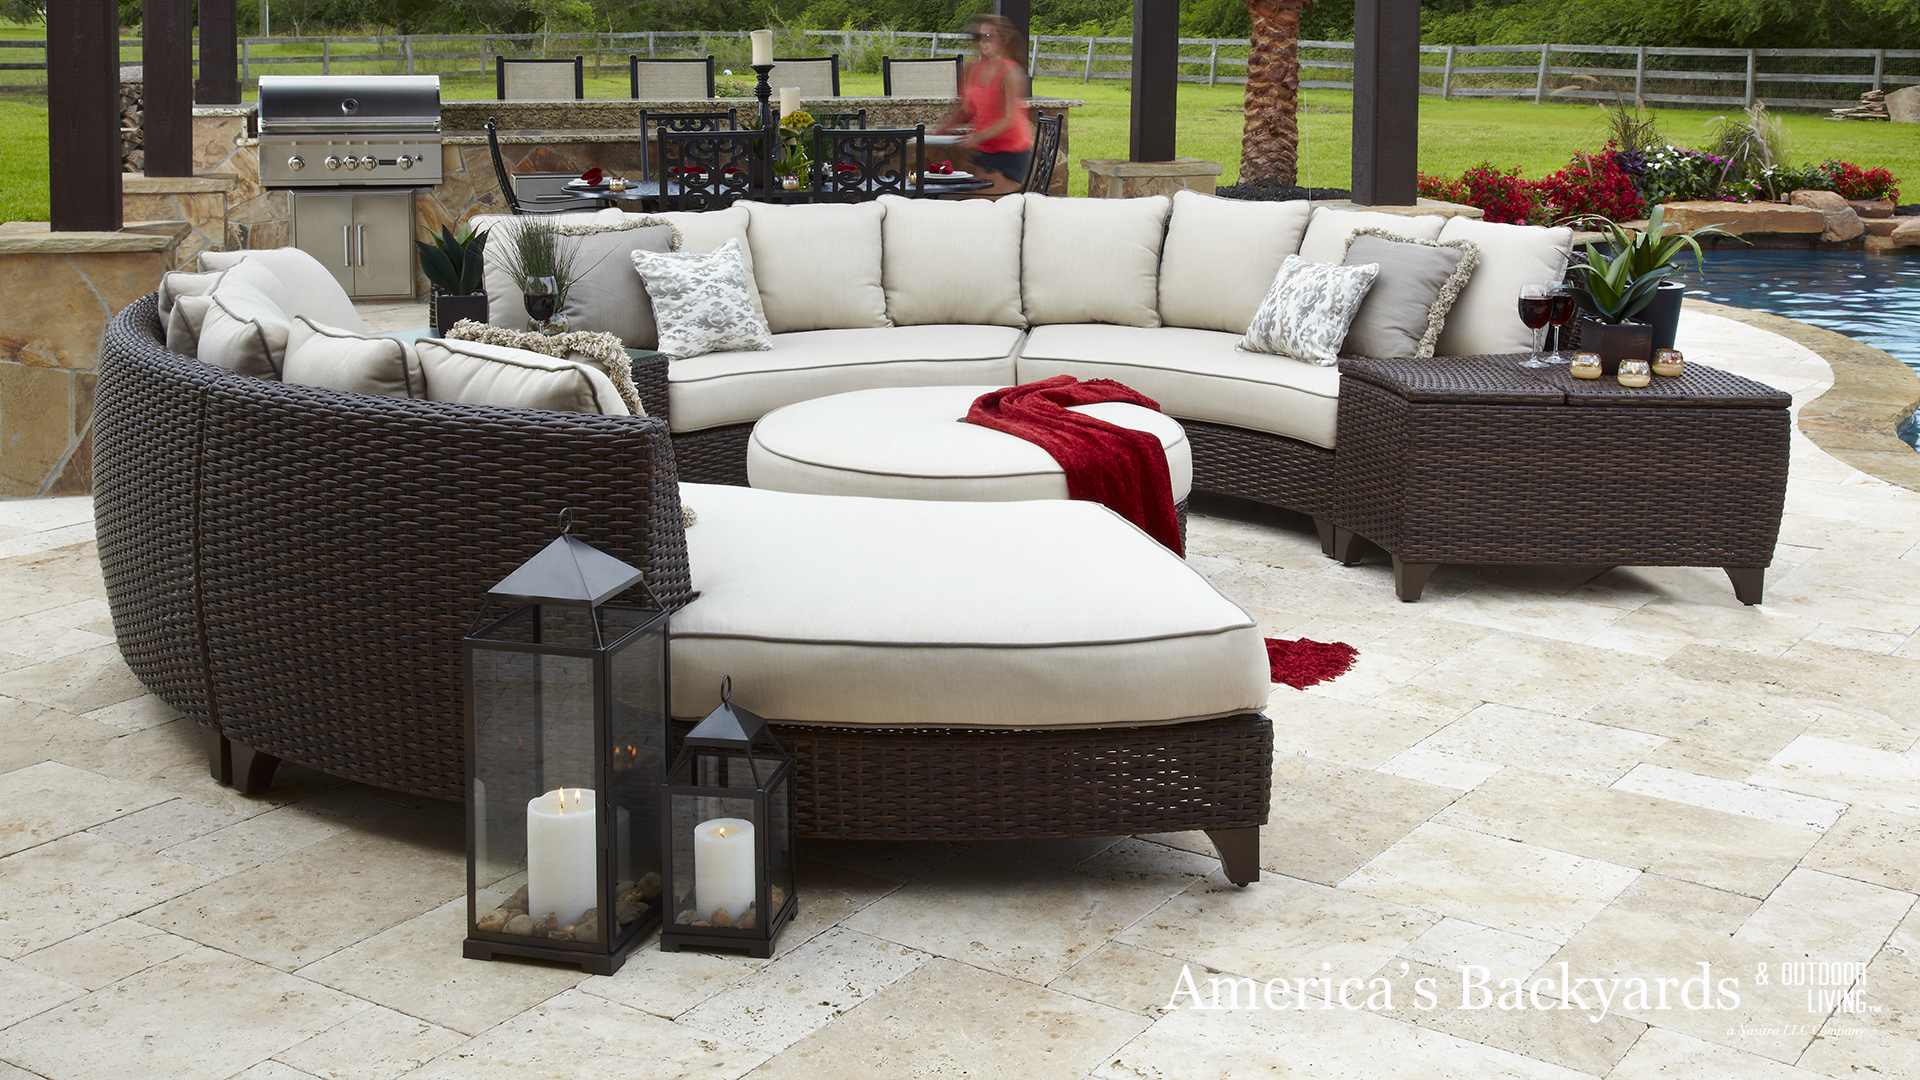 Crafty Outdoor Living Room Set Bridgeconnect Co Ideas Shocking inside 13 Clever Ways How to Build Outdoor Living Room Sets